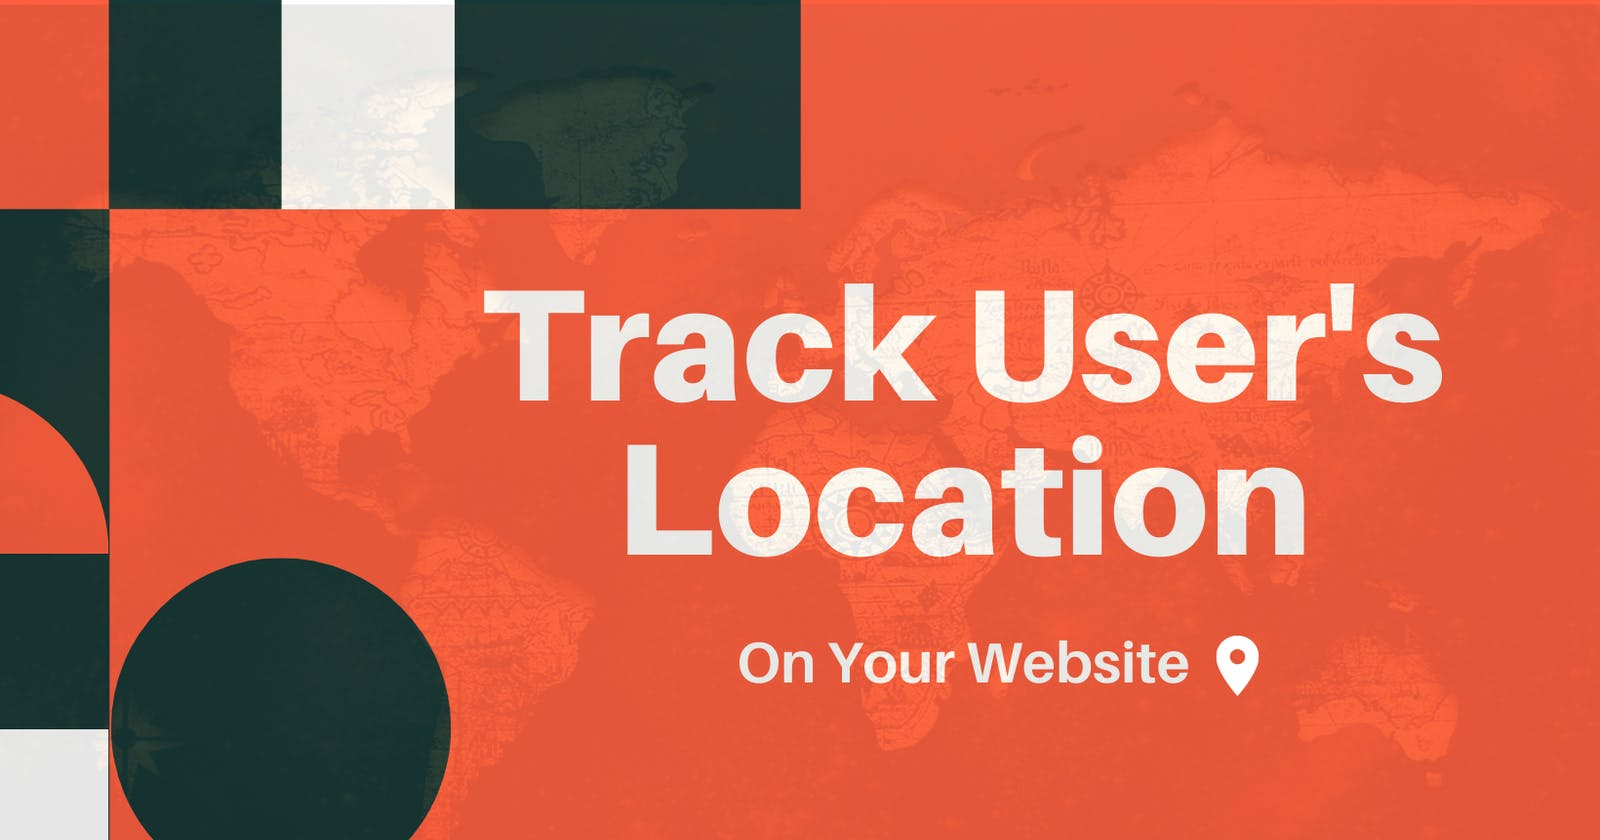 How To Track User's Location